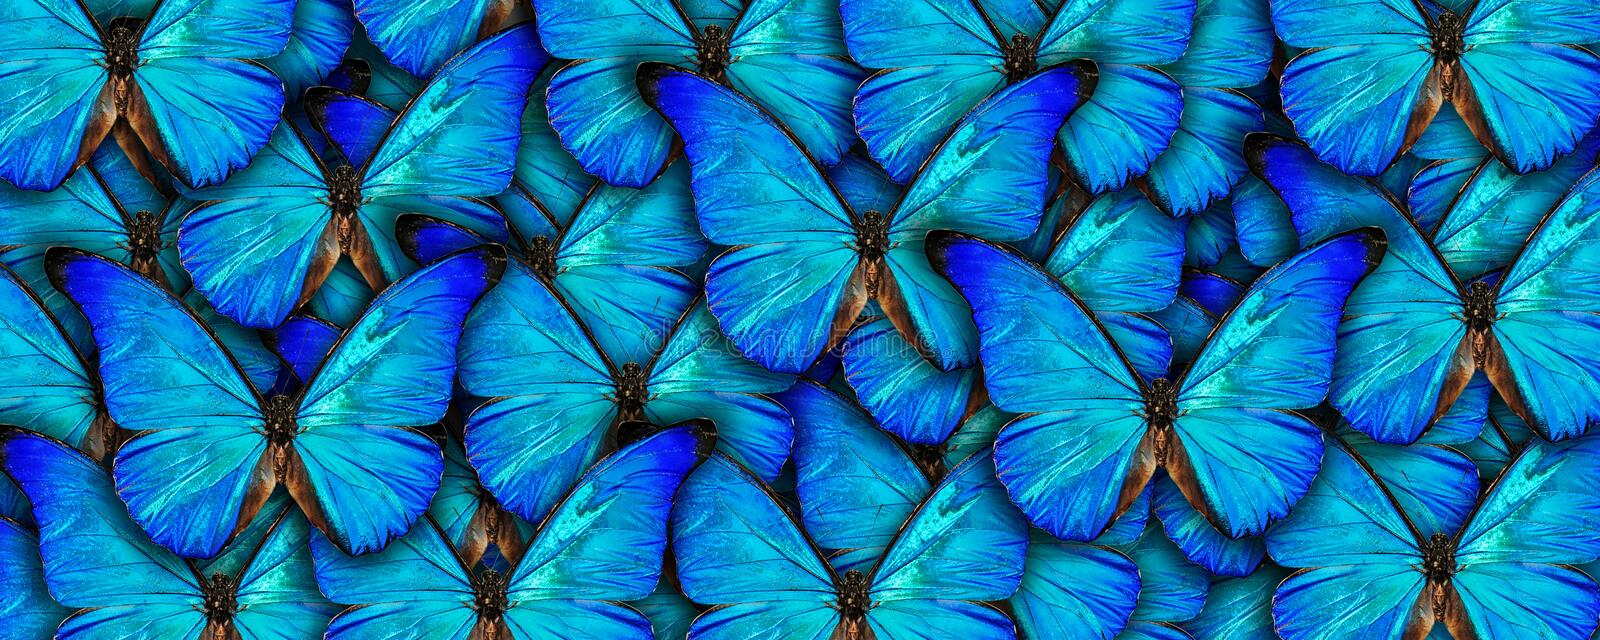 Beautiful natural background with a lot of vibrant blue butterflys. Photo collage art work. A high resolution vector illustration